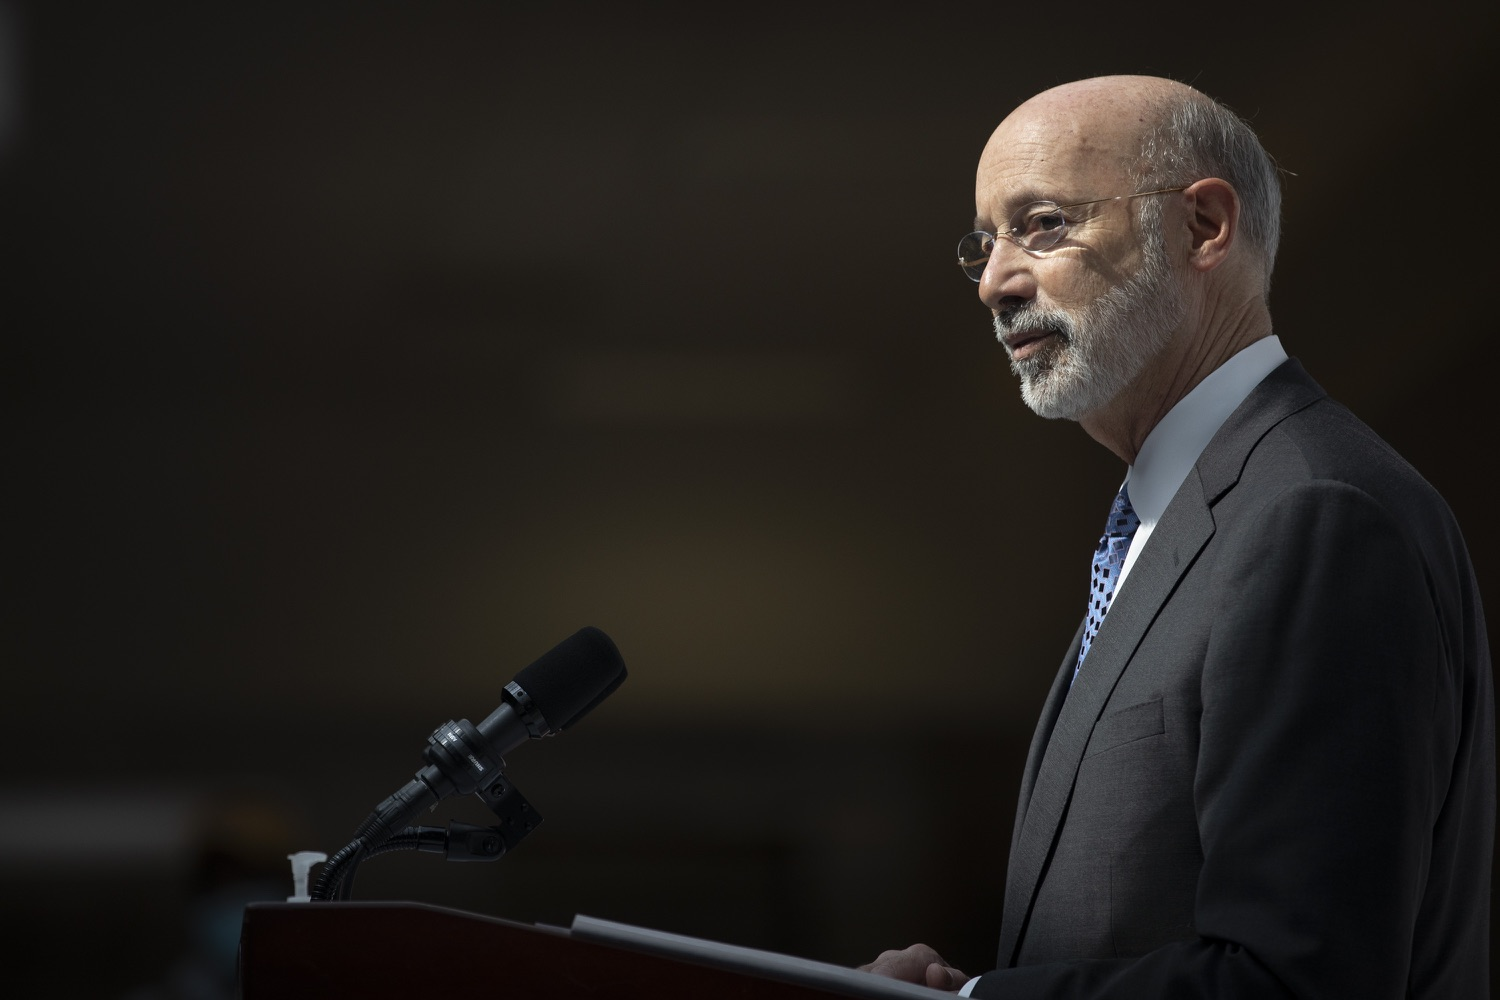 "<a href=""https://filesource.wostreaming.net/commonwealthofpa/photo/18712_gov_vaccines_dz_005.jpg"" target=""_blank"">⇣ Download Photo<br></a>Pennsylvania Governor Tom Wolf speaking with the press.  Continuing to visit COVID-19 vaccine clinics around the state, Governor Tom Wolf toured a clinic at the Washington Crown Center in Washington County today. The clinic is one of three operated by the Washington Health System (WHS) serving rural communities in southwestern Pennsylvania.  North Franklin Township, PA  April 28, 2021"